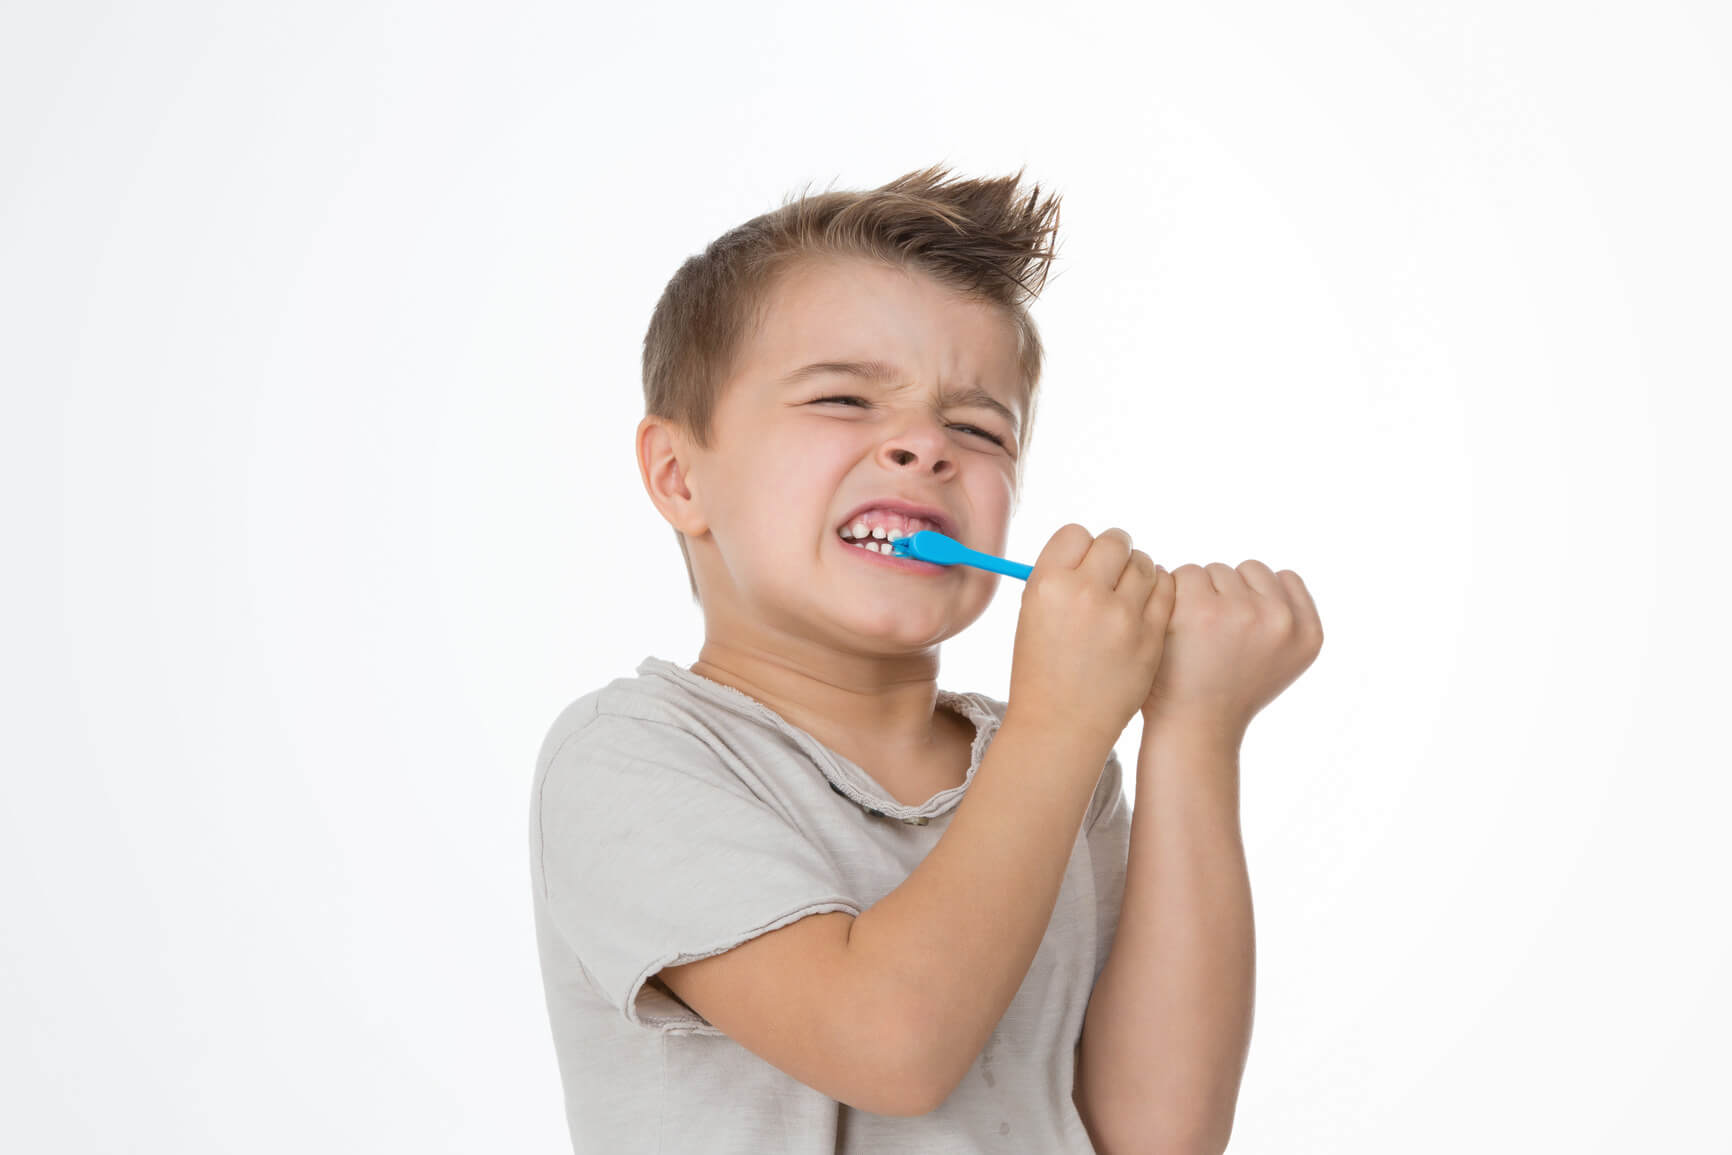 Are Your Kids Making One of These 10 Common Tooth Brushing Mistakes? -  Southdaviskids